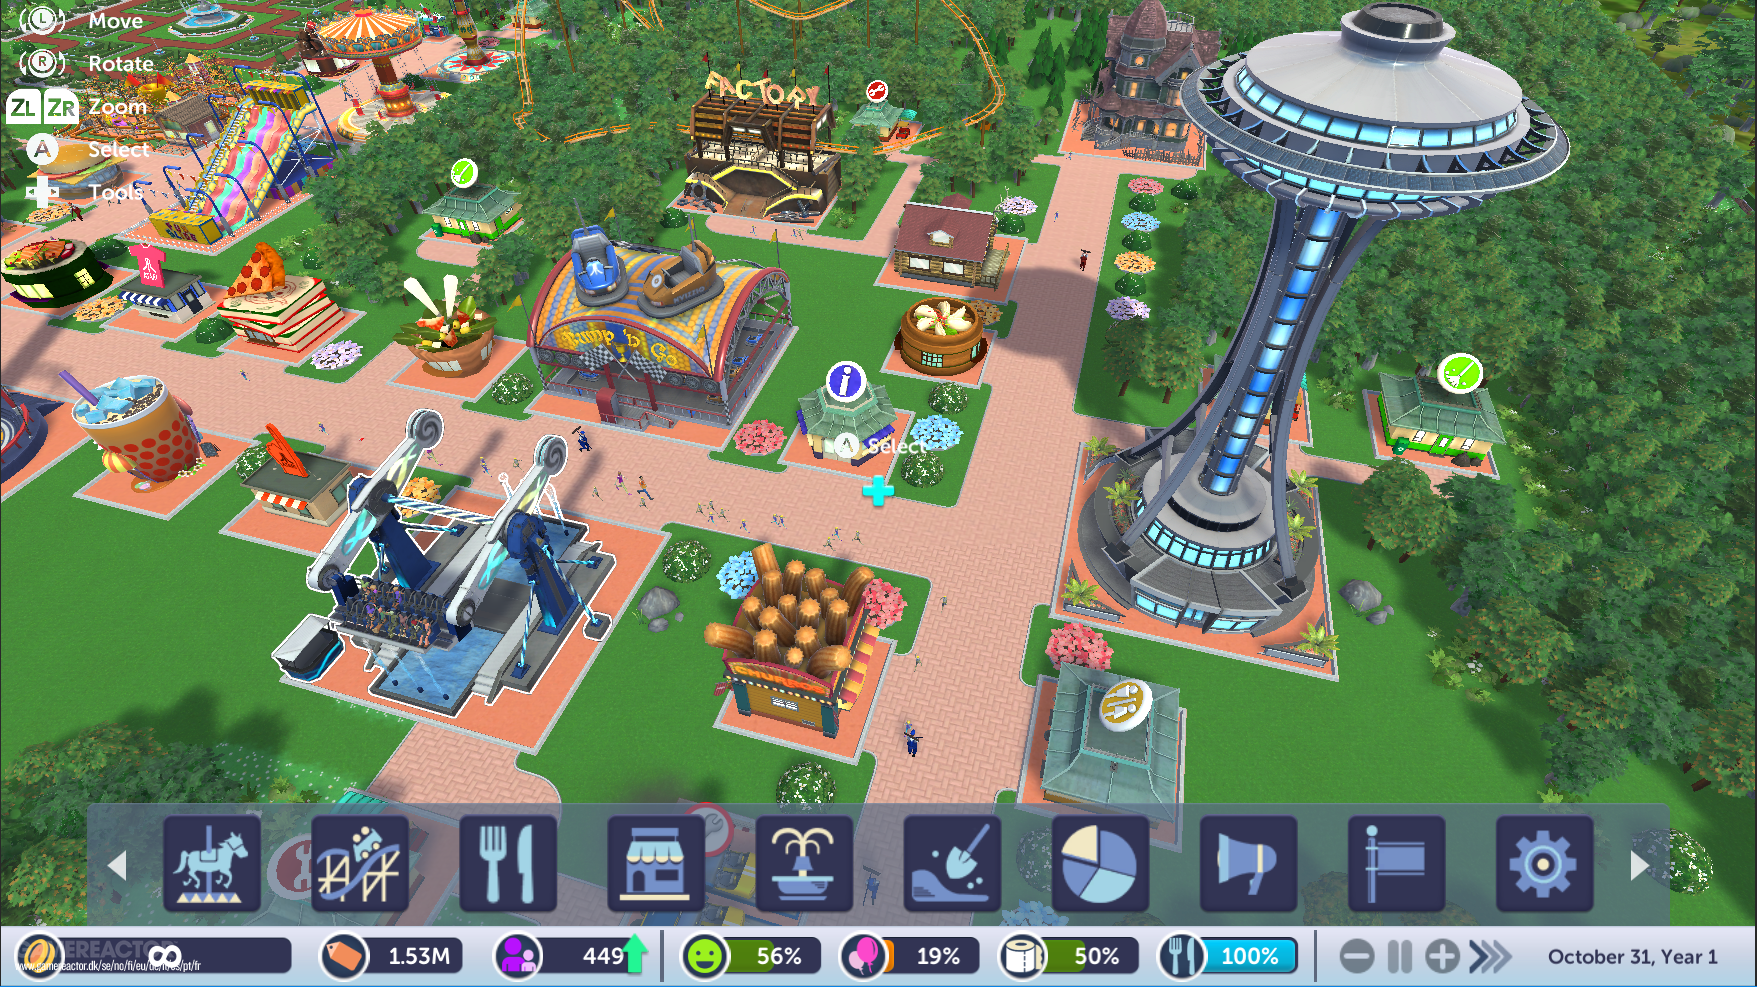 Pictures of Rollercoaster Tycoon Adventures 6/18